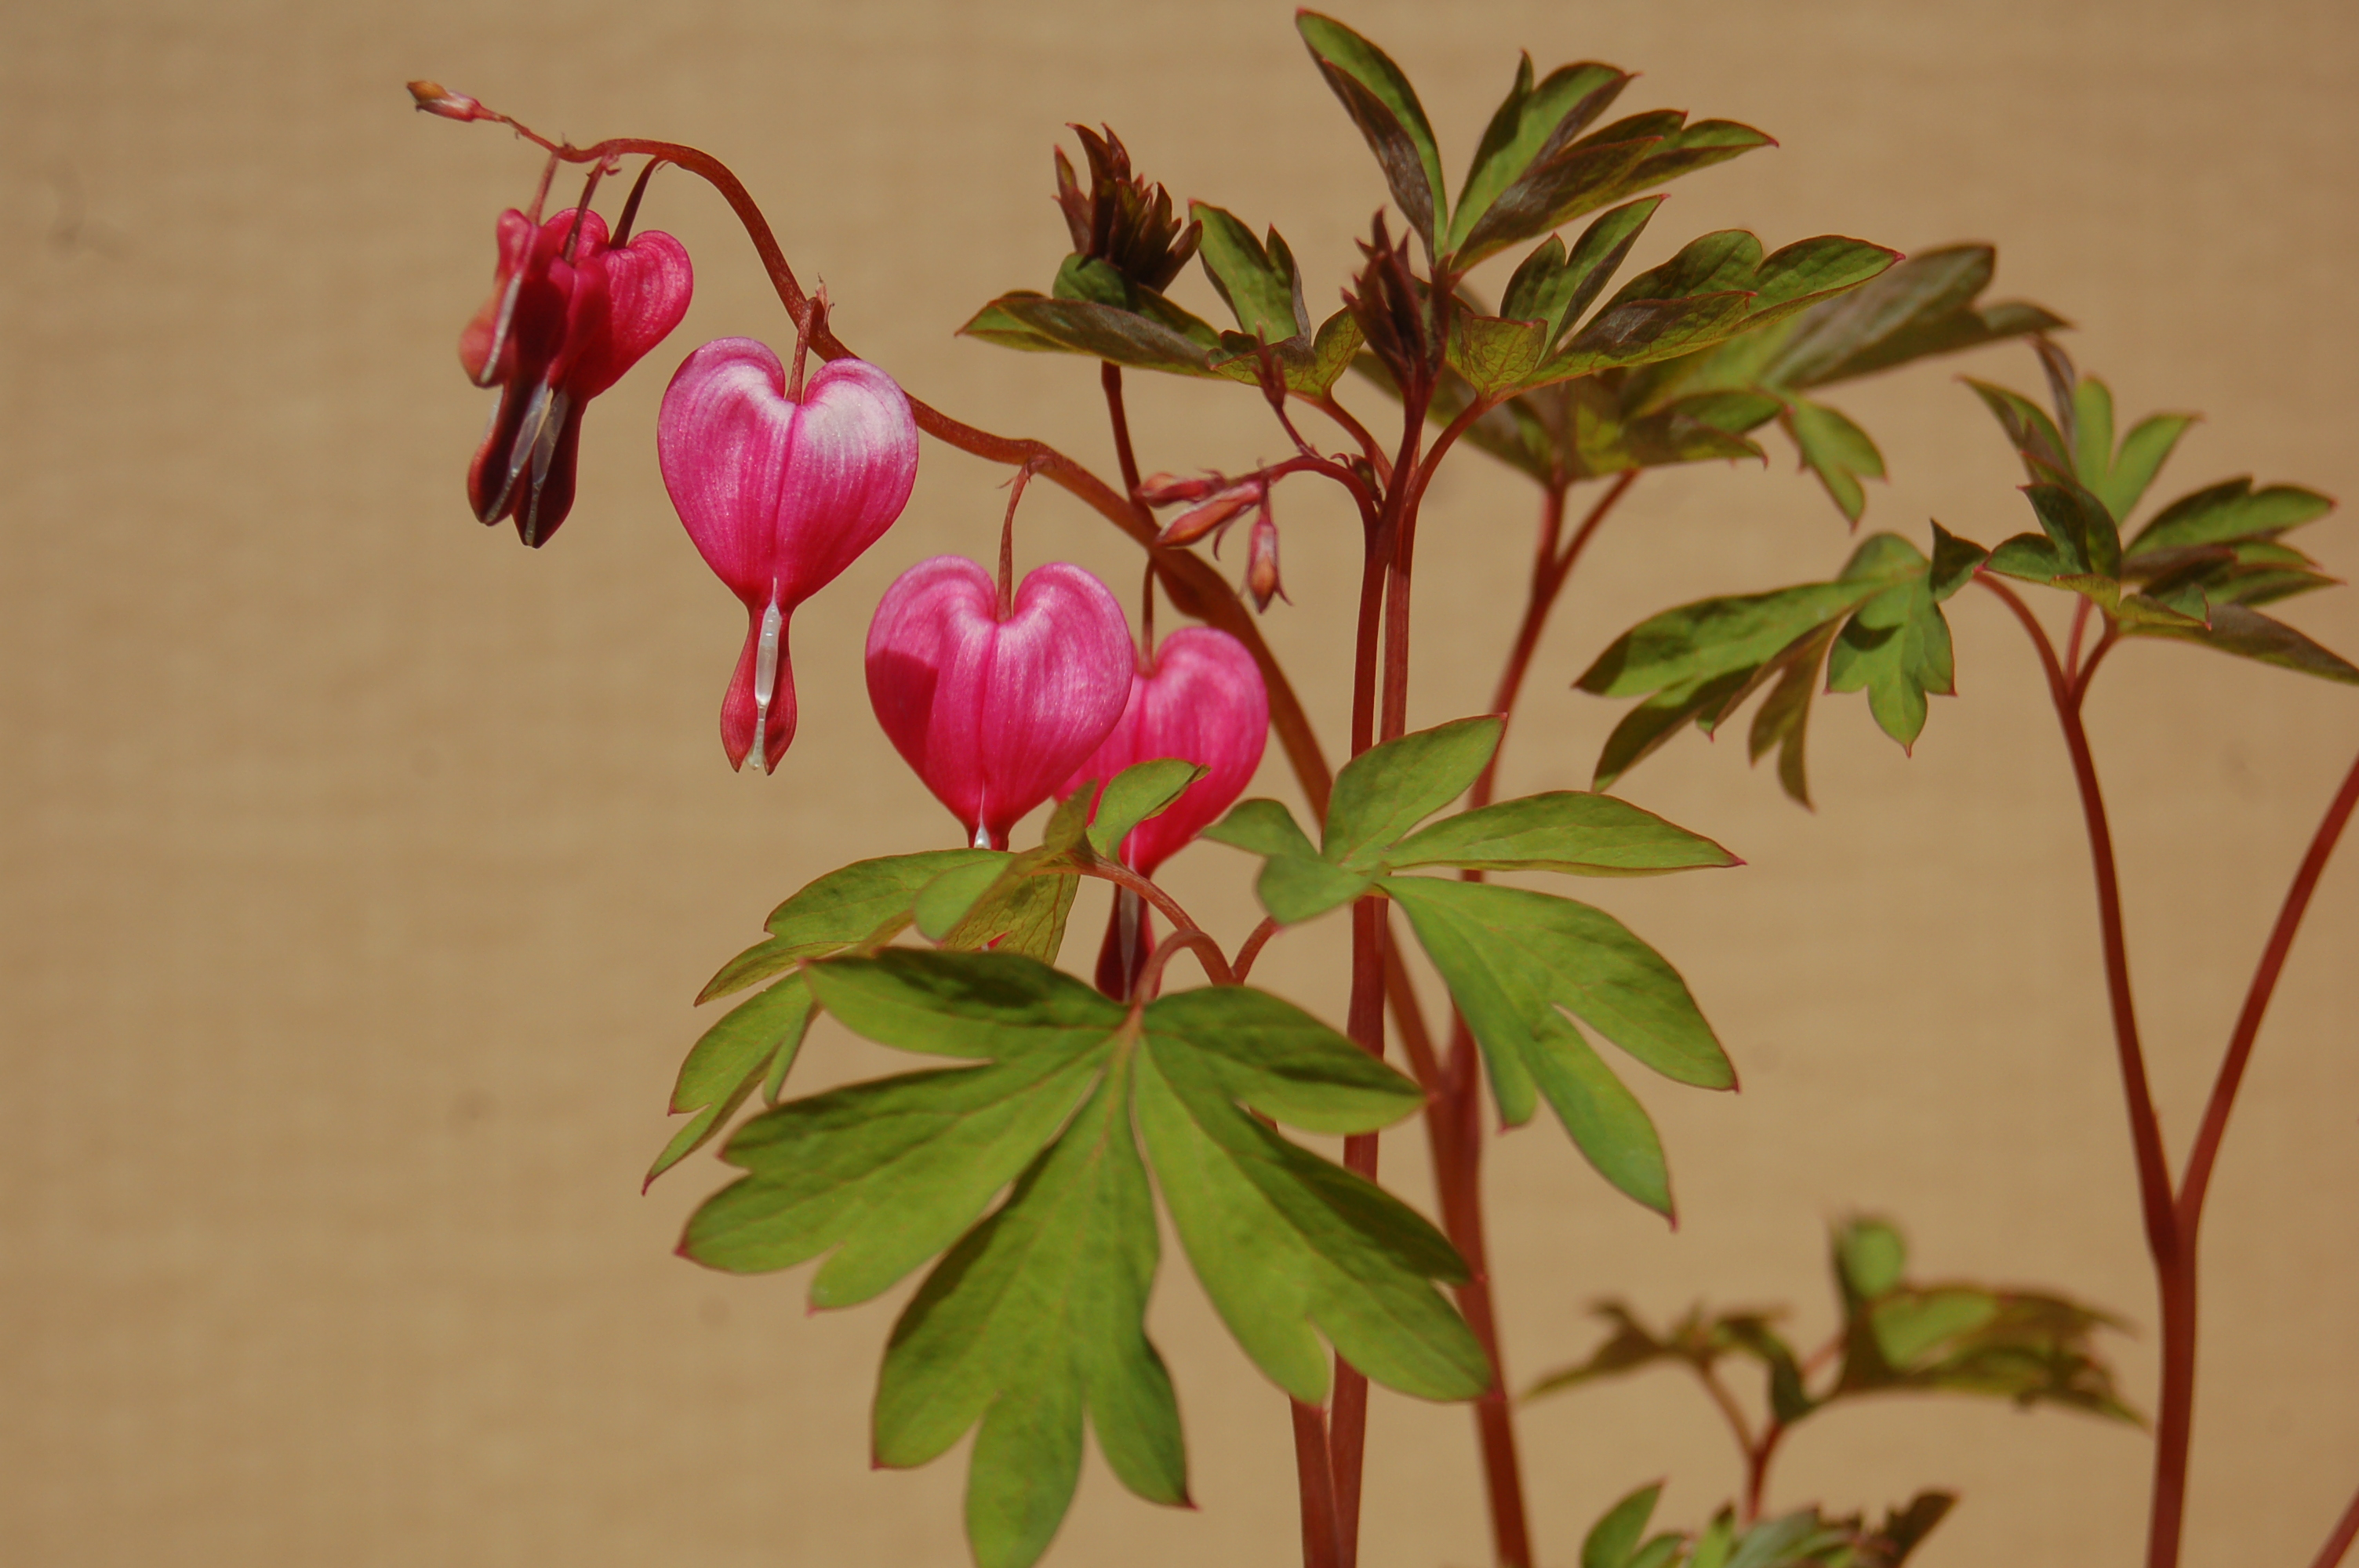 Dicentra spectabilis , Srdcovka